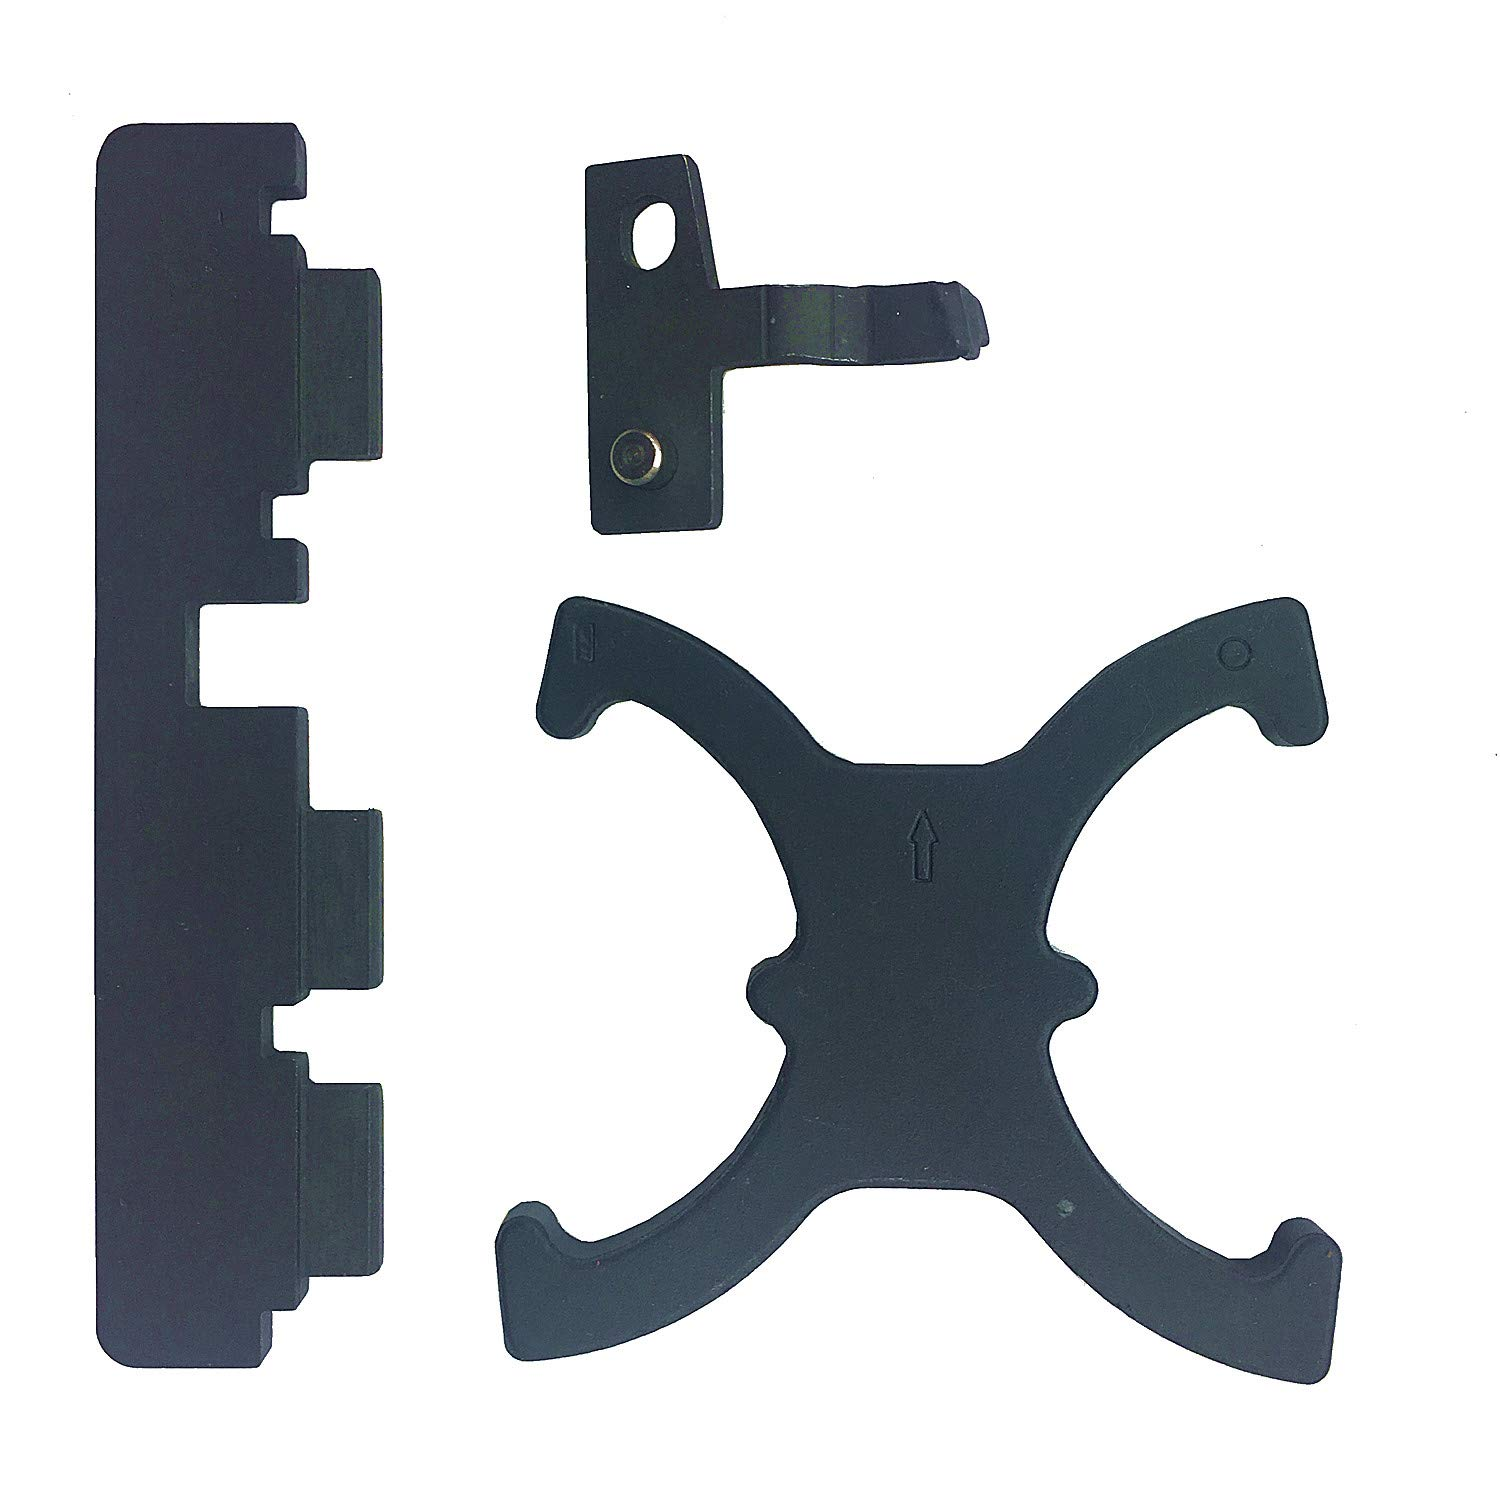 Best Q Engine Camshaft Timing Locking Tool Set Kit for Ford Focus 1.6 Mazada 1.6 Eco Boost Volvo by Best Q (Image #3)